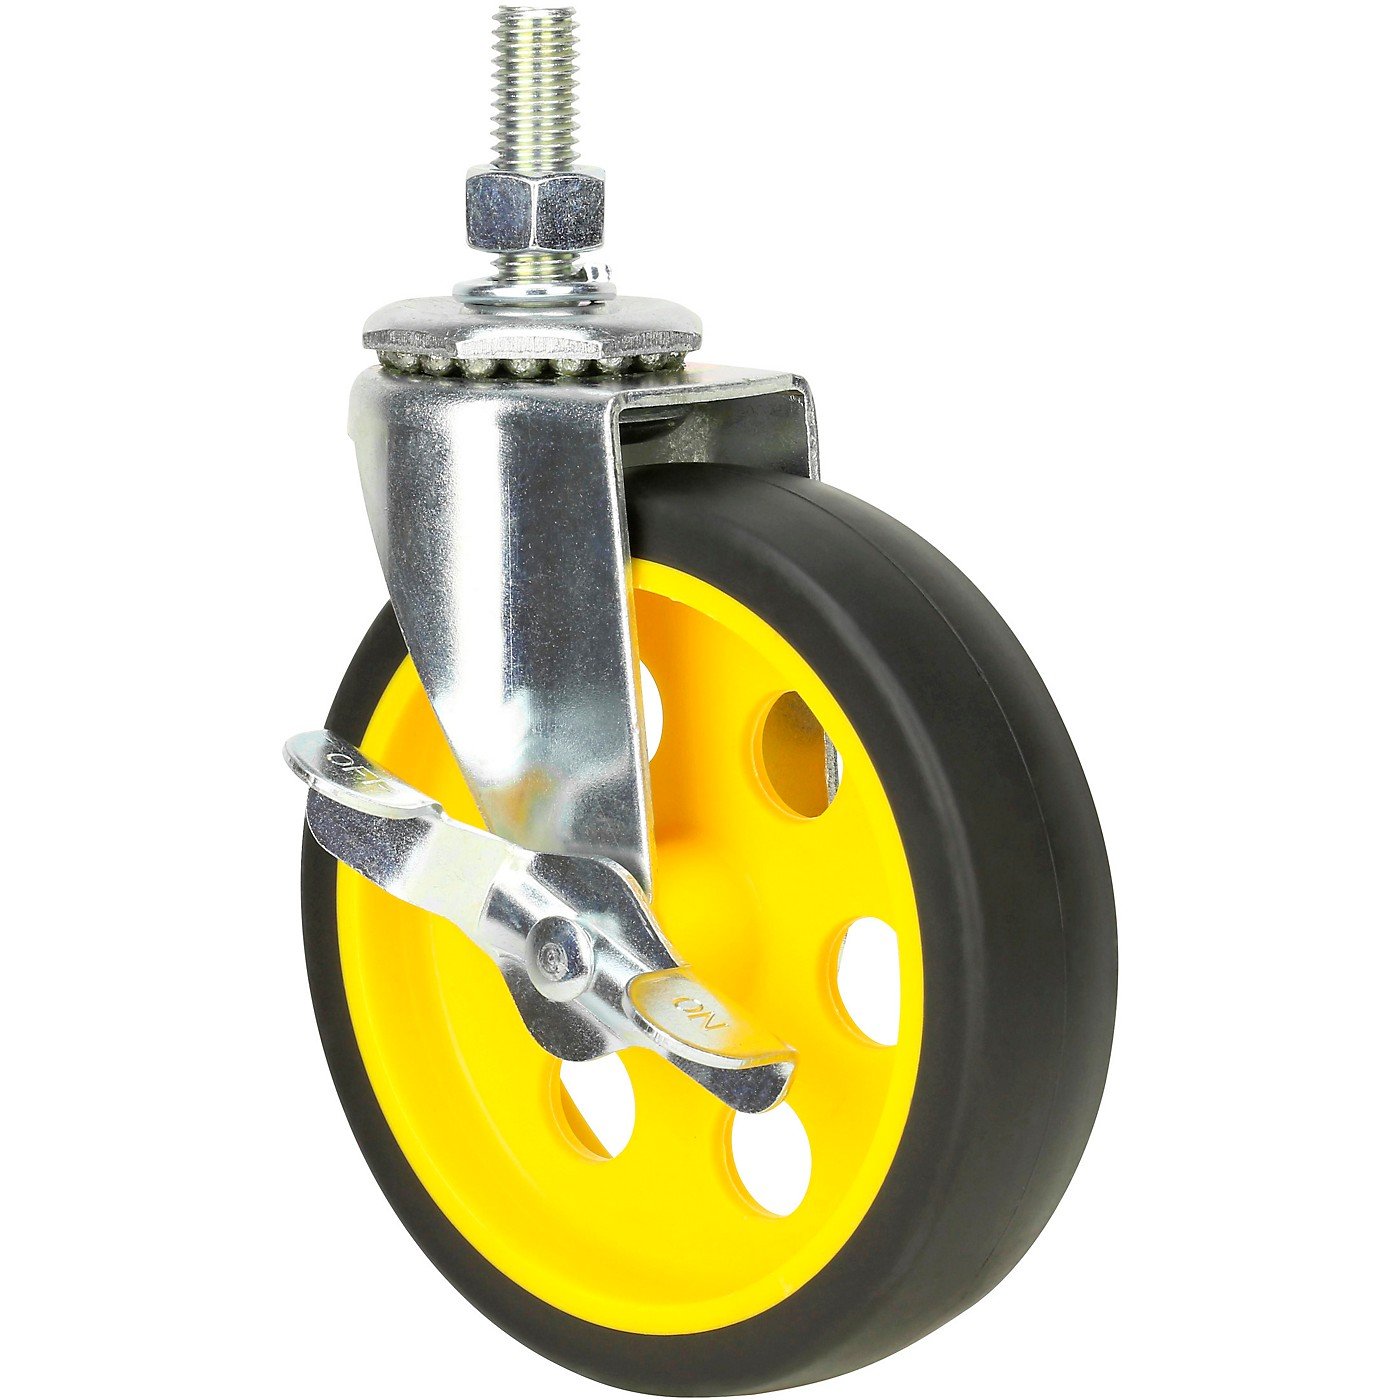 Rock N Roller RCSTR5X125 5in. G-Force Caster with Brake For R8, R10 Carts - 2-Pack thumbnail